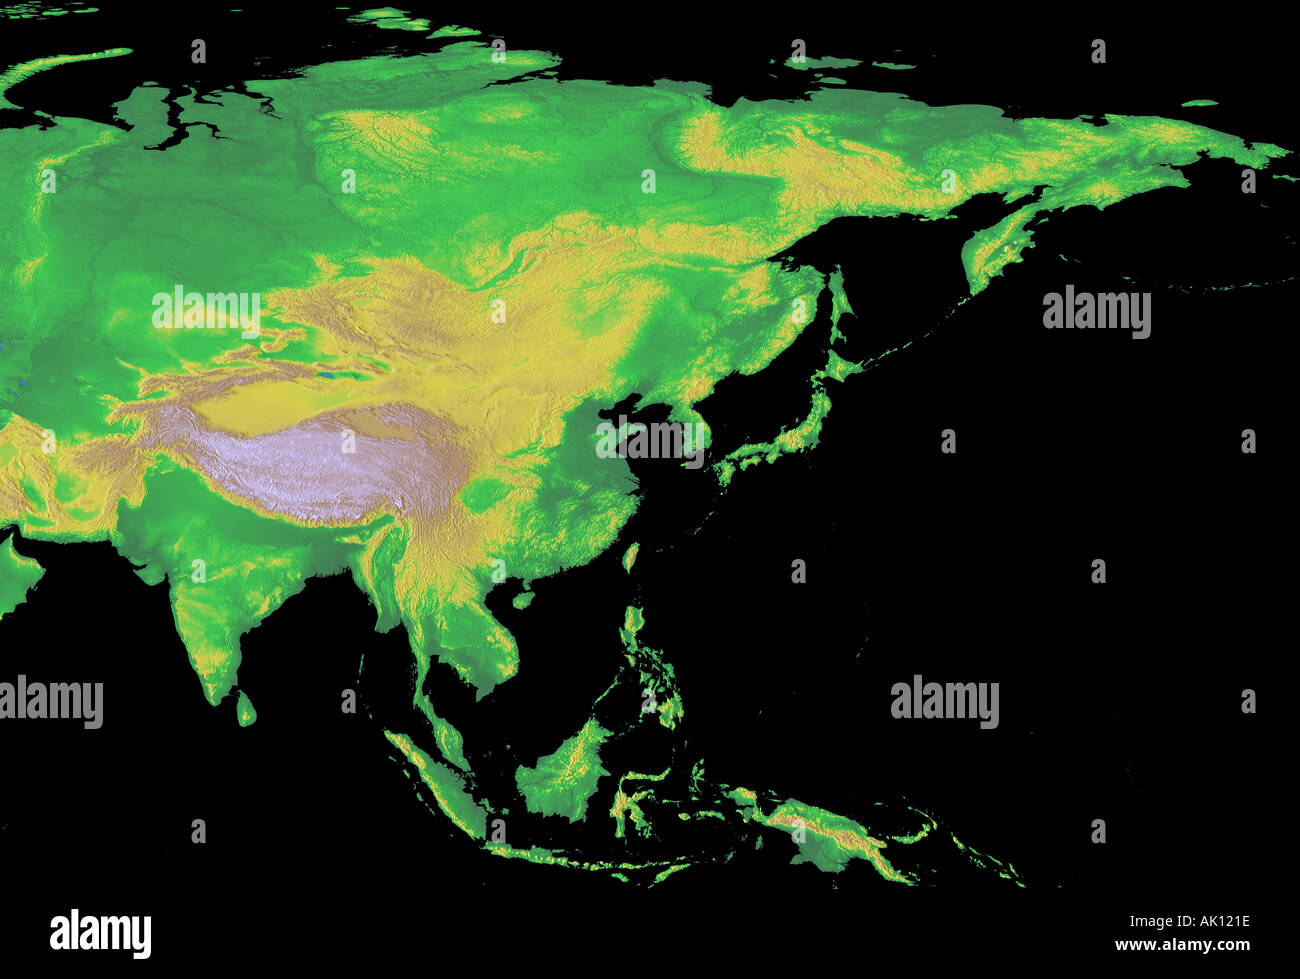 Digital Elevation Map Of Asia Earth From Space Stock Photo - Digital elevation map of the world